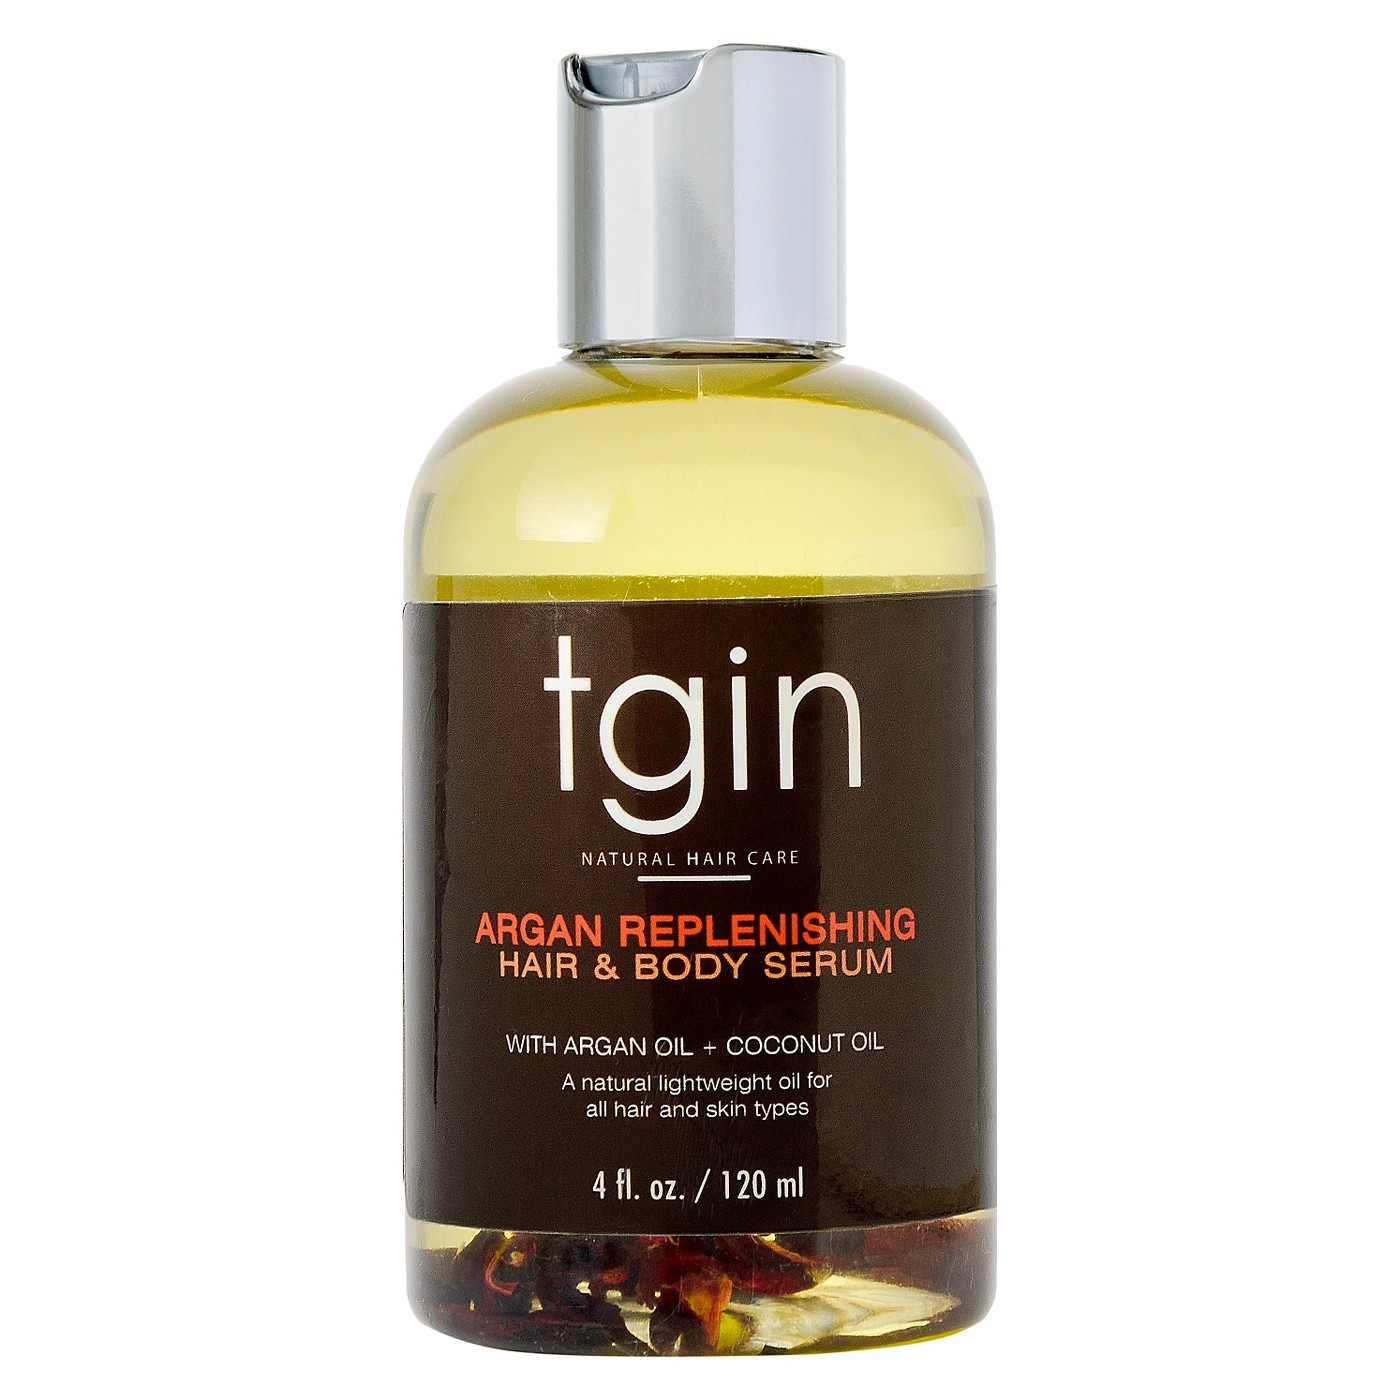 tgin Argan Replenishing and Hair Body Serum for Natural Hair